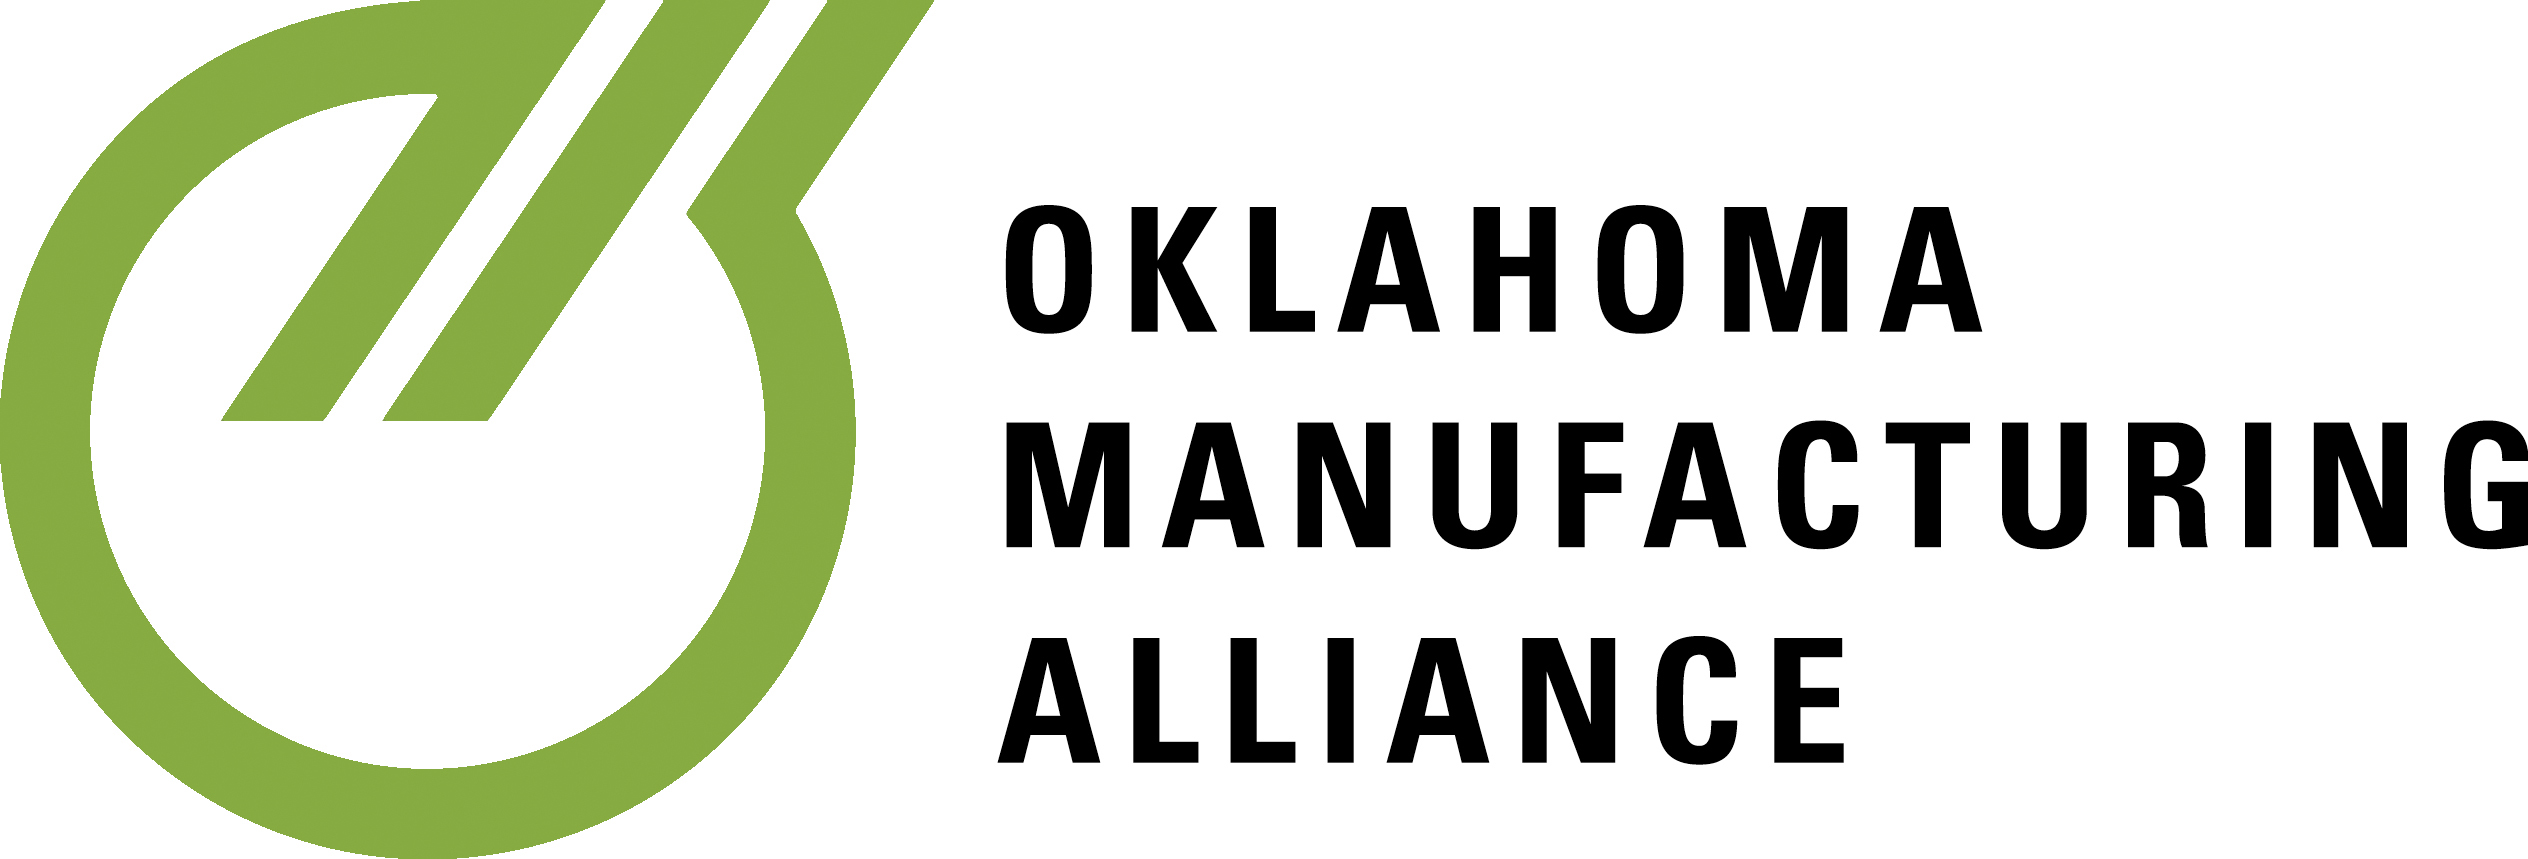 Oklahoma Manufacturing Alliance is a client of Chris Zervas, an employee engagement and retention keynote speaker in Oklahoma